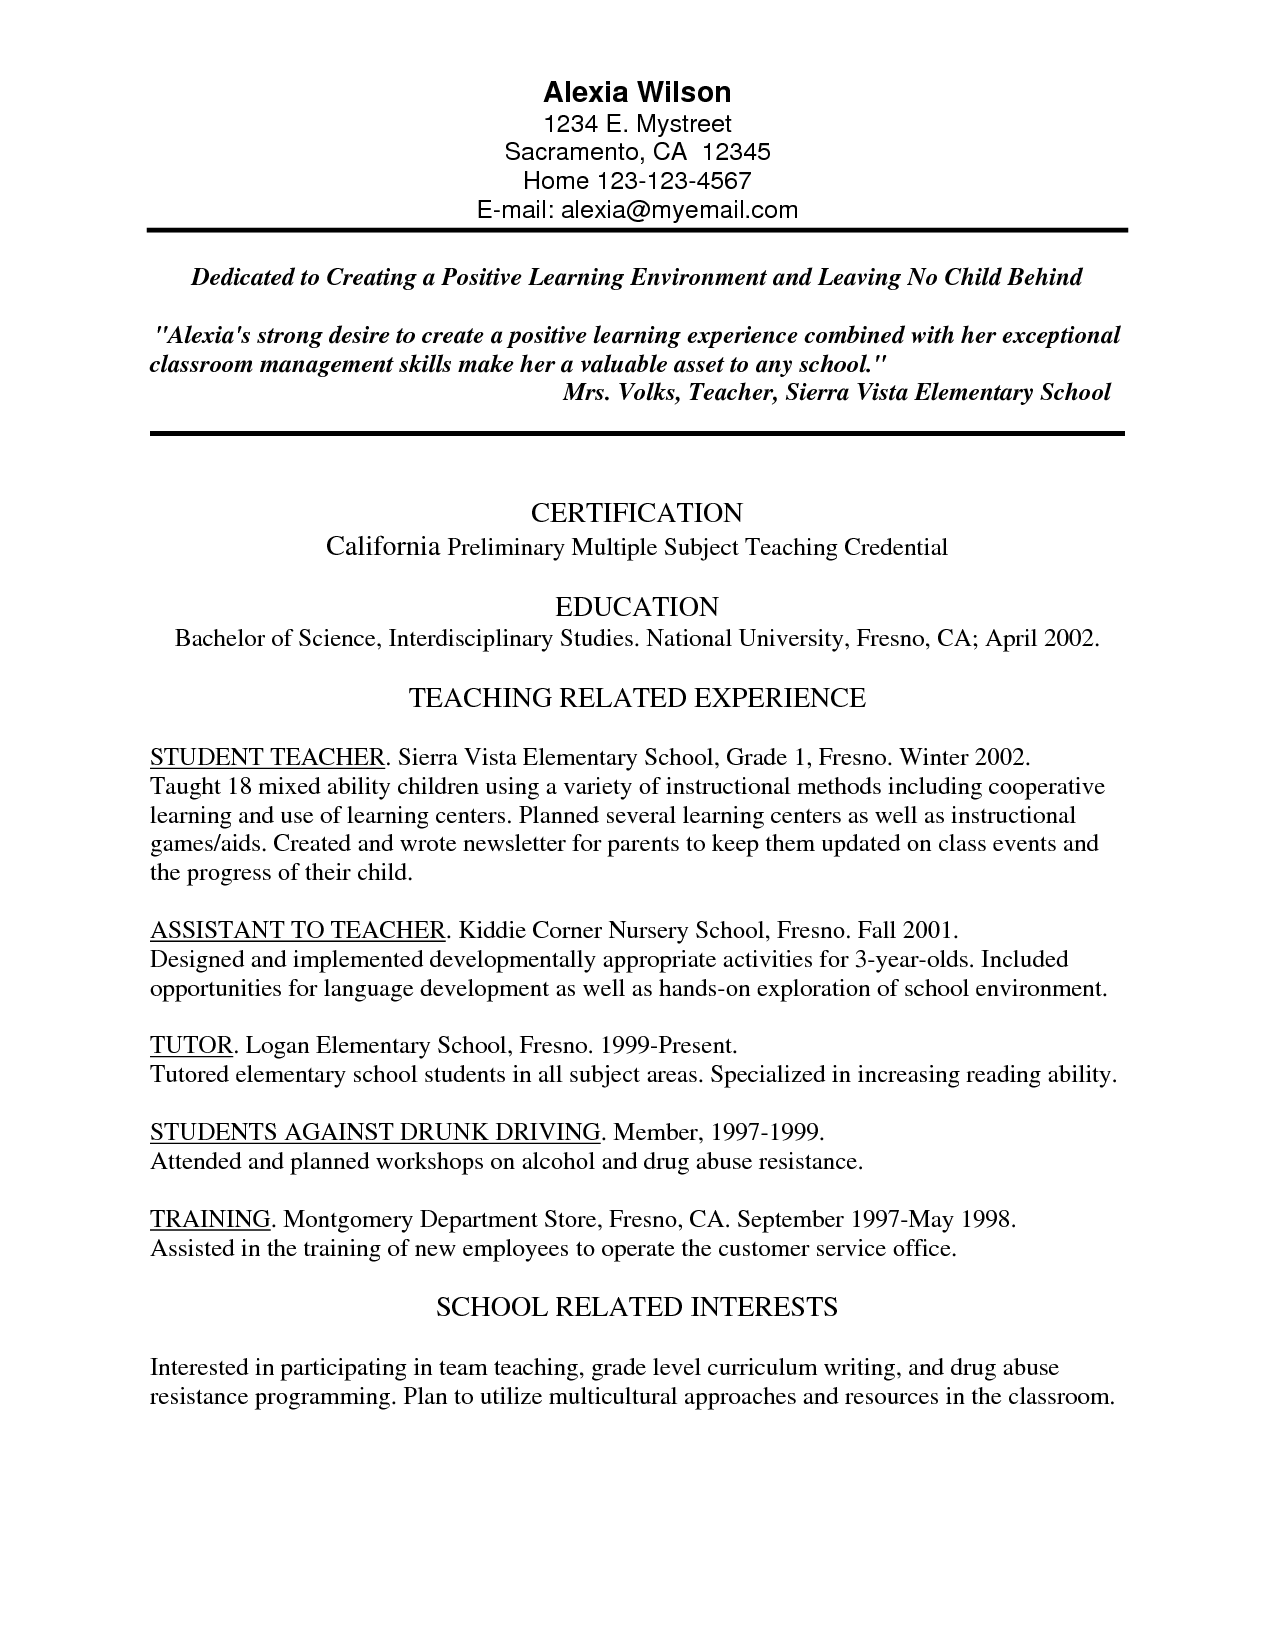 Teacher Aide Resume Template Australia Cvs Whether You Are Requisitioning An Advancements